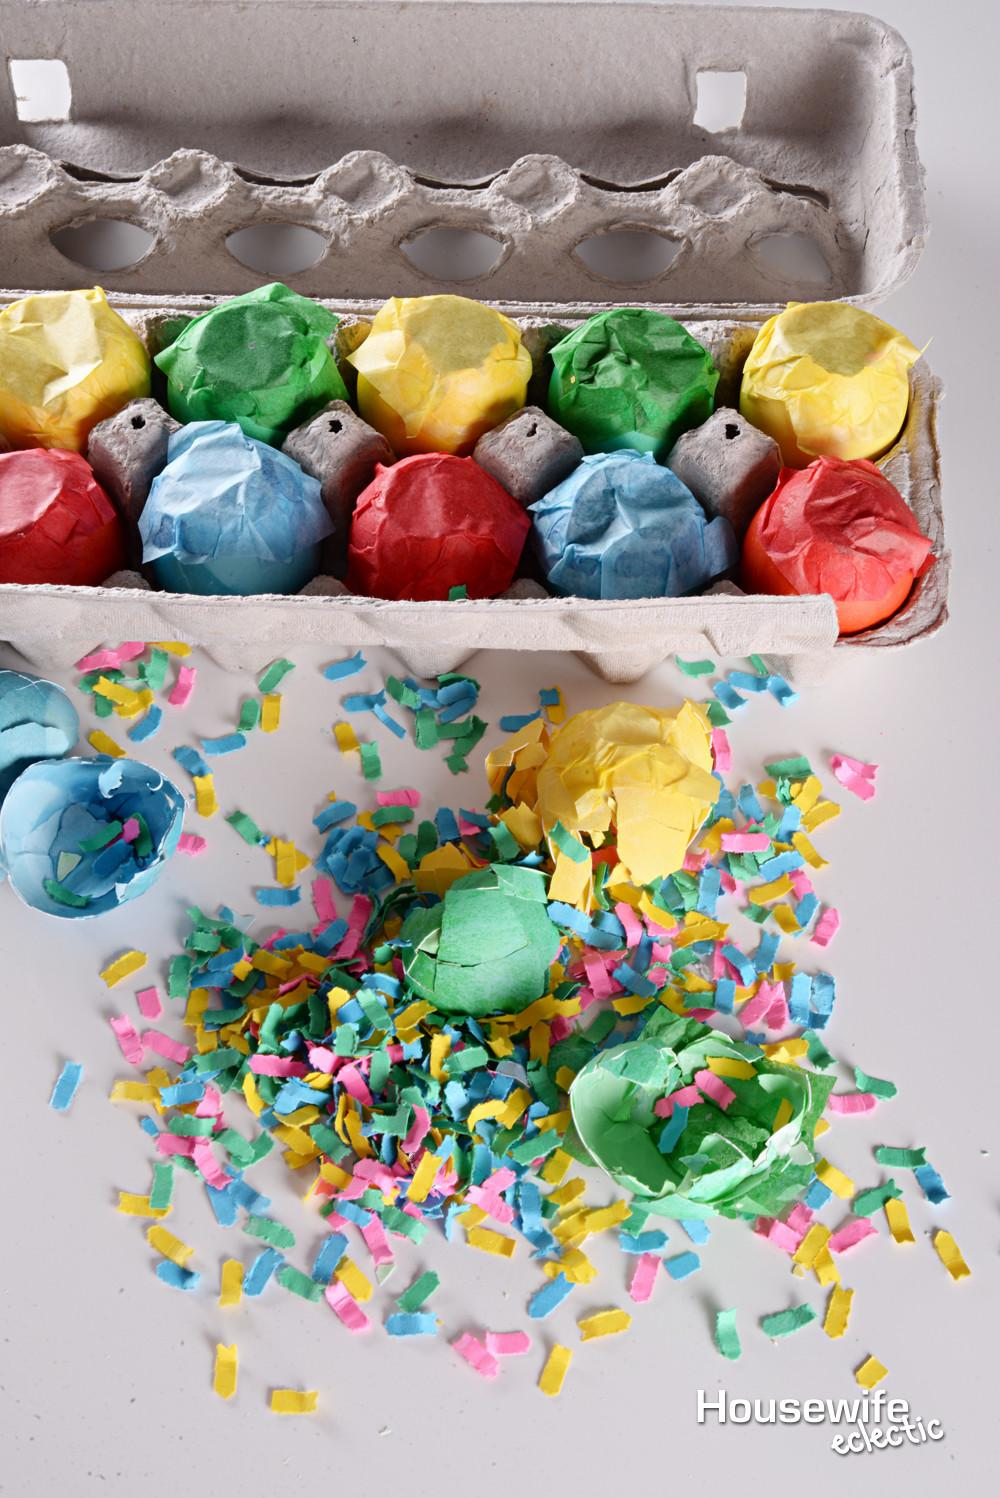 Make Cascarones Confetti Eggs Housewife Eclectic